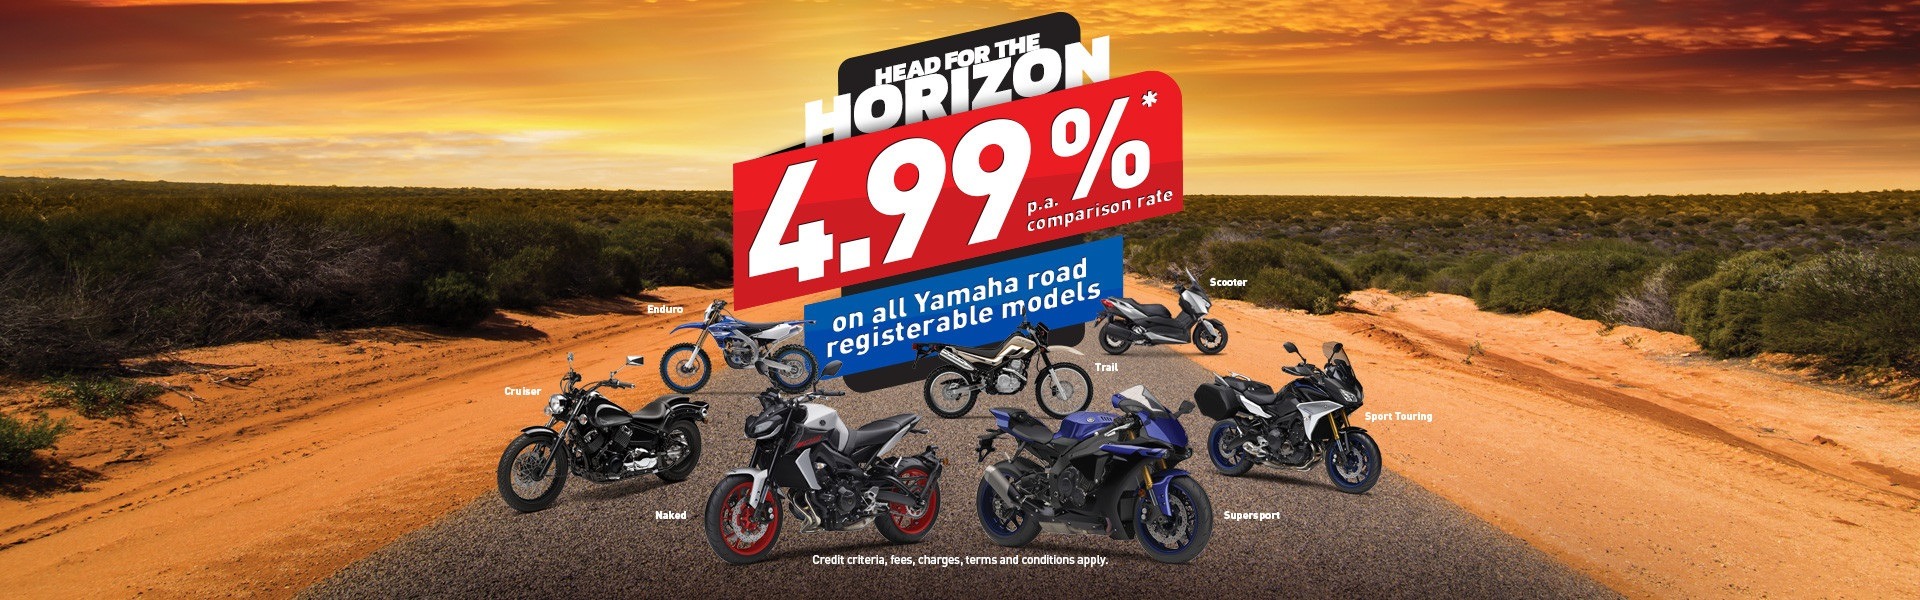 Yamaha motorcycle models on a poster.